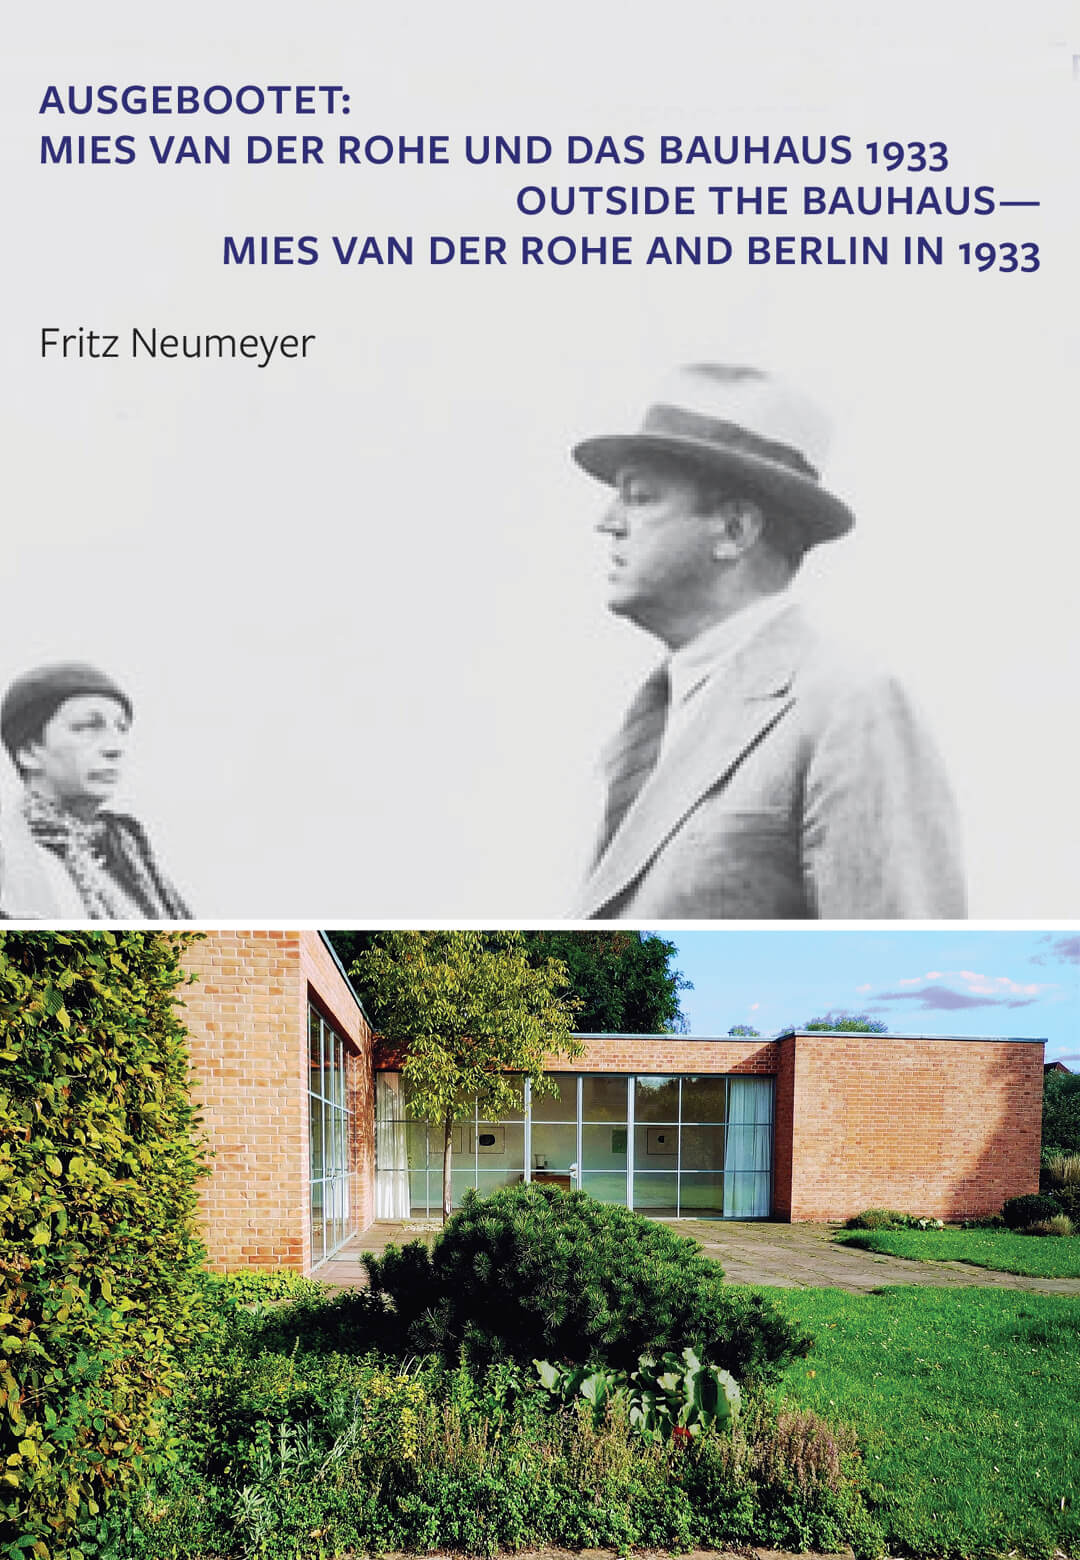 Cover from Fritz Neumeyer's book outside the Bauhaus - Mies van der Rohe and Berlin in 1933. External view of the Lemke House from 2011| Mies goes Future | Mies van der Rohe Haus | STIRworld